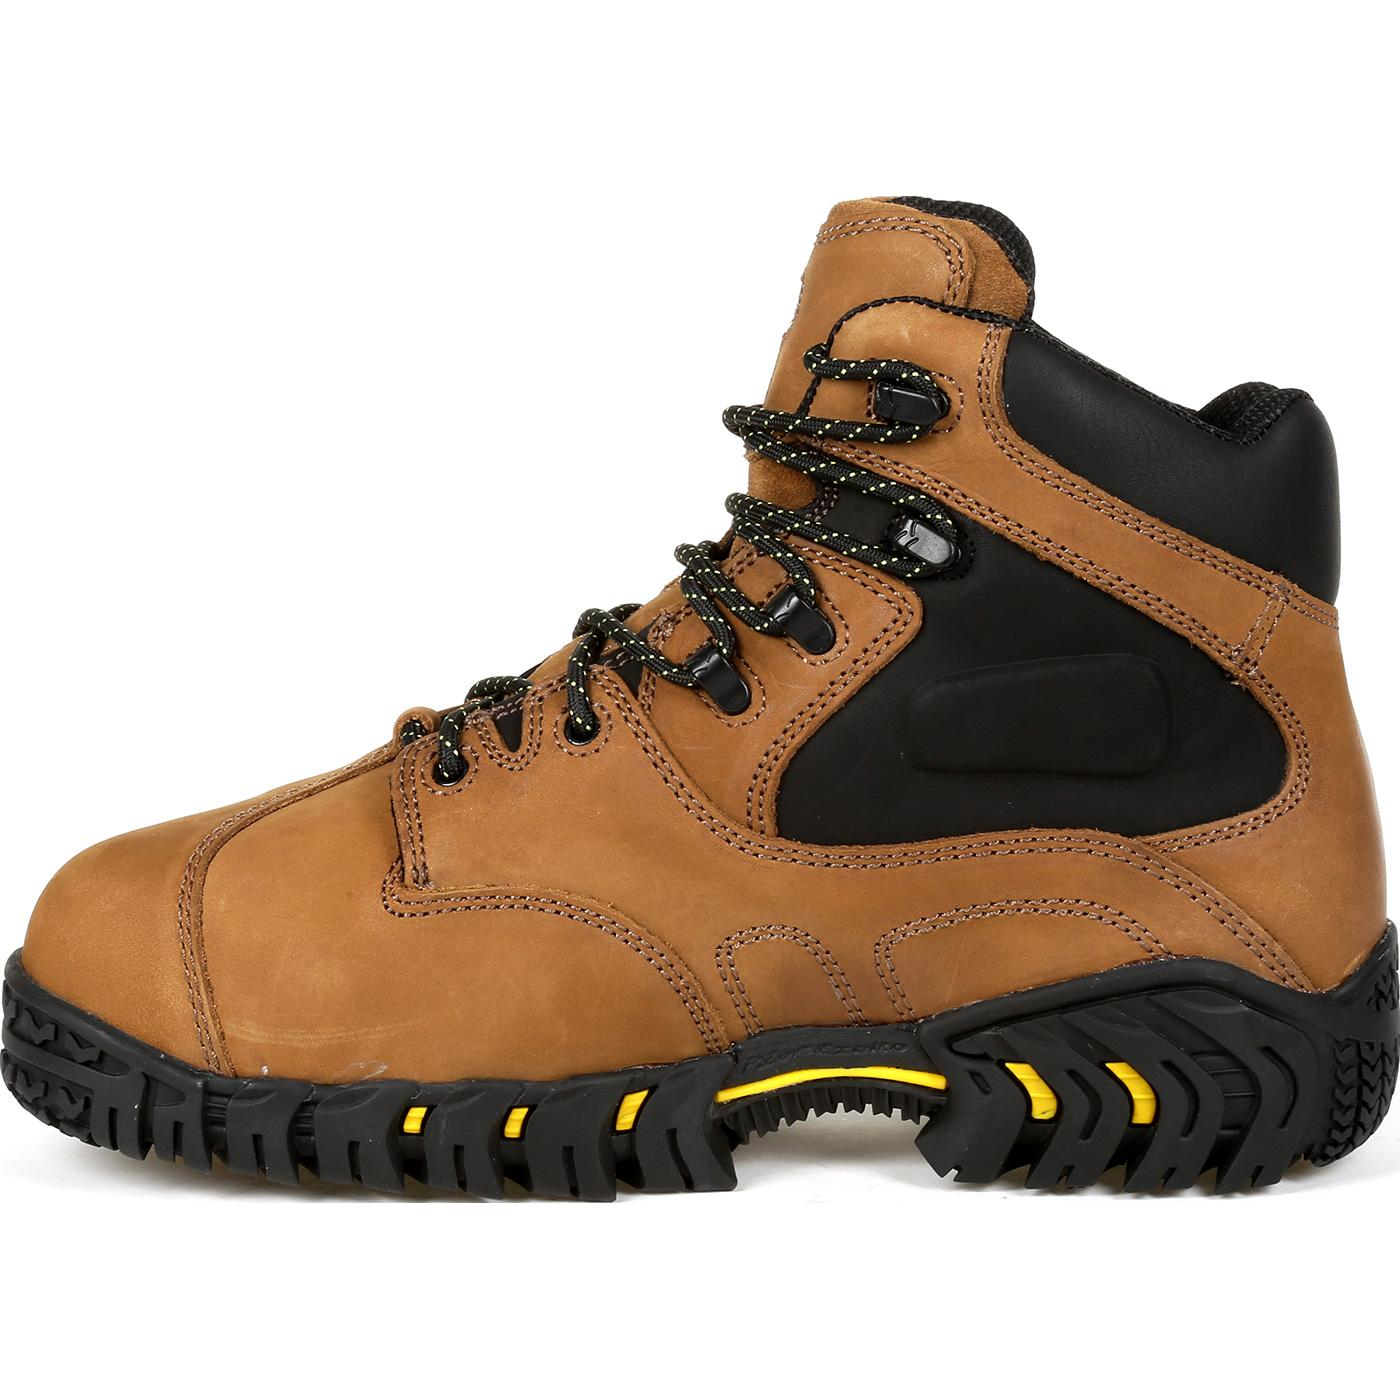 Michelin 174 Men S Metatarsal Guard Steel Toe Work Boot Xpx763